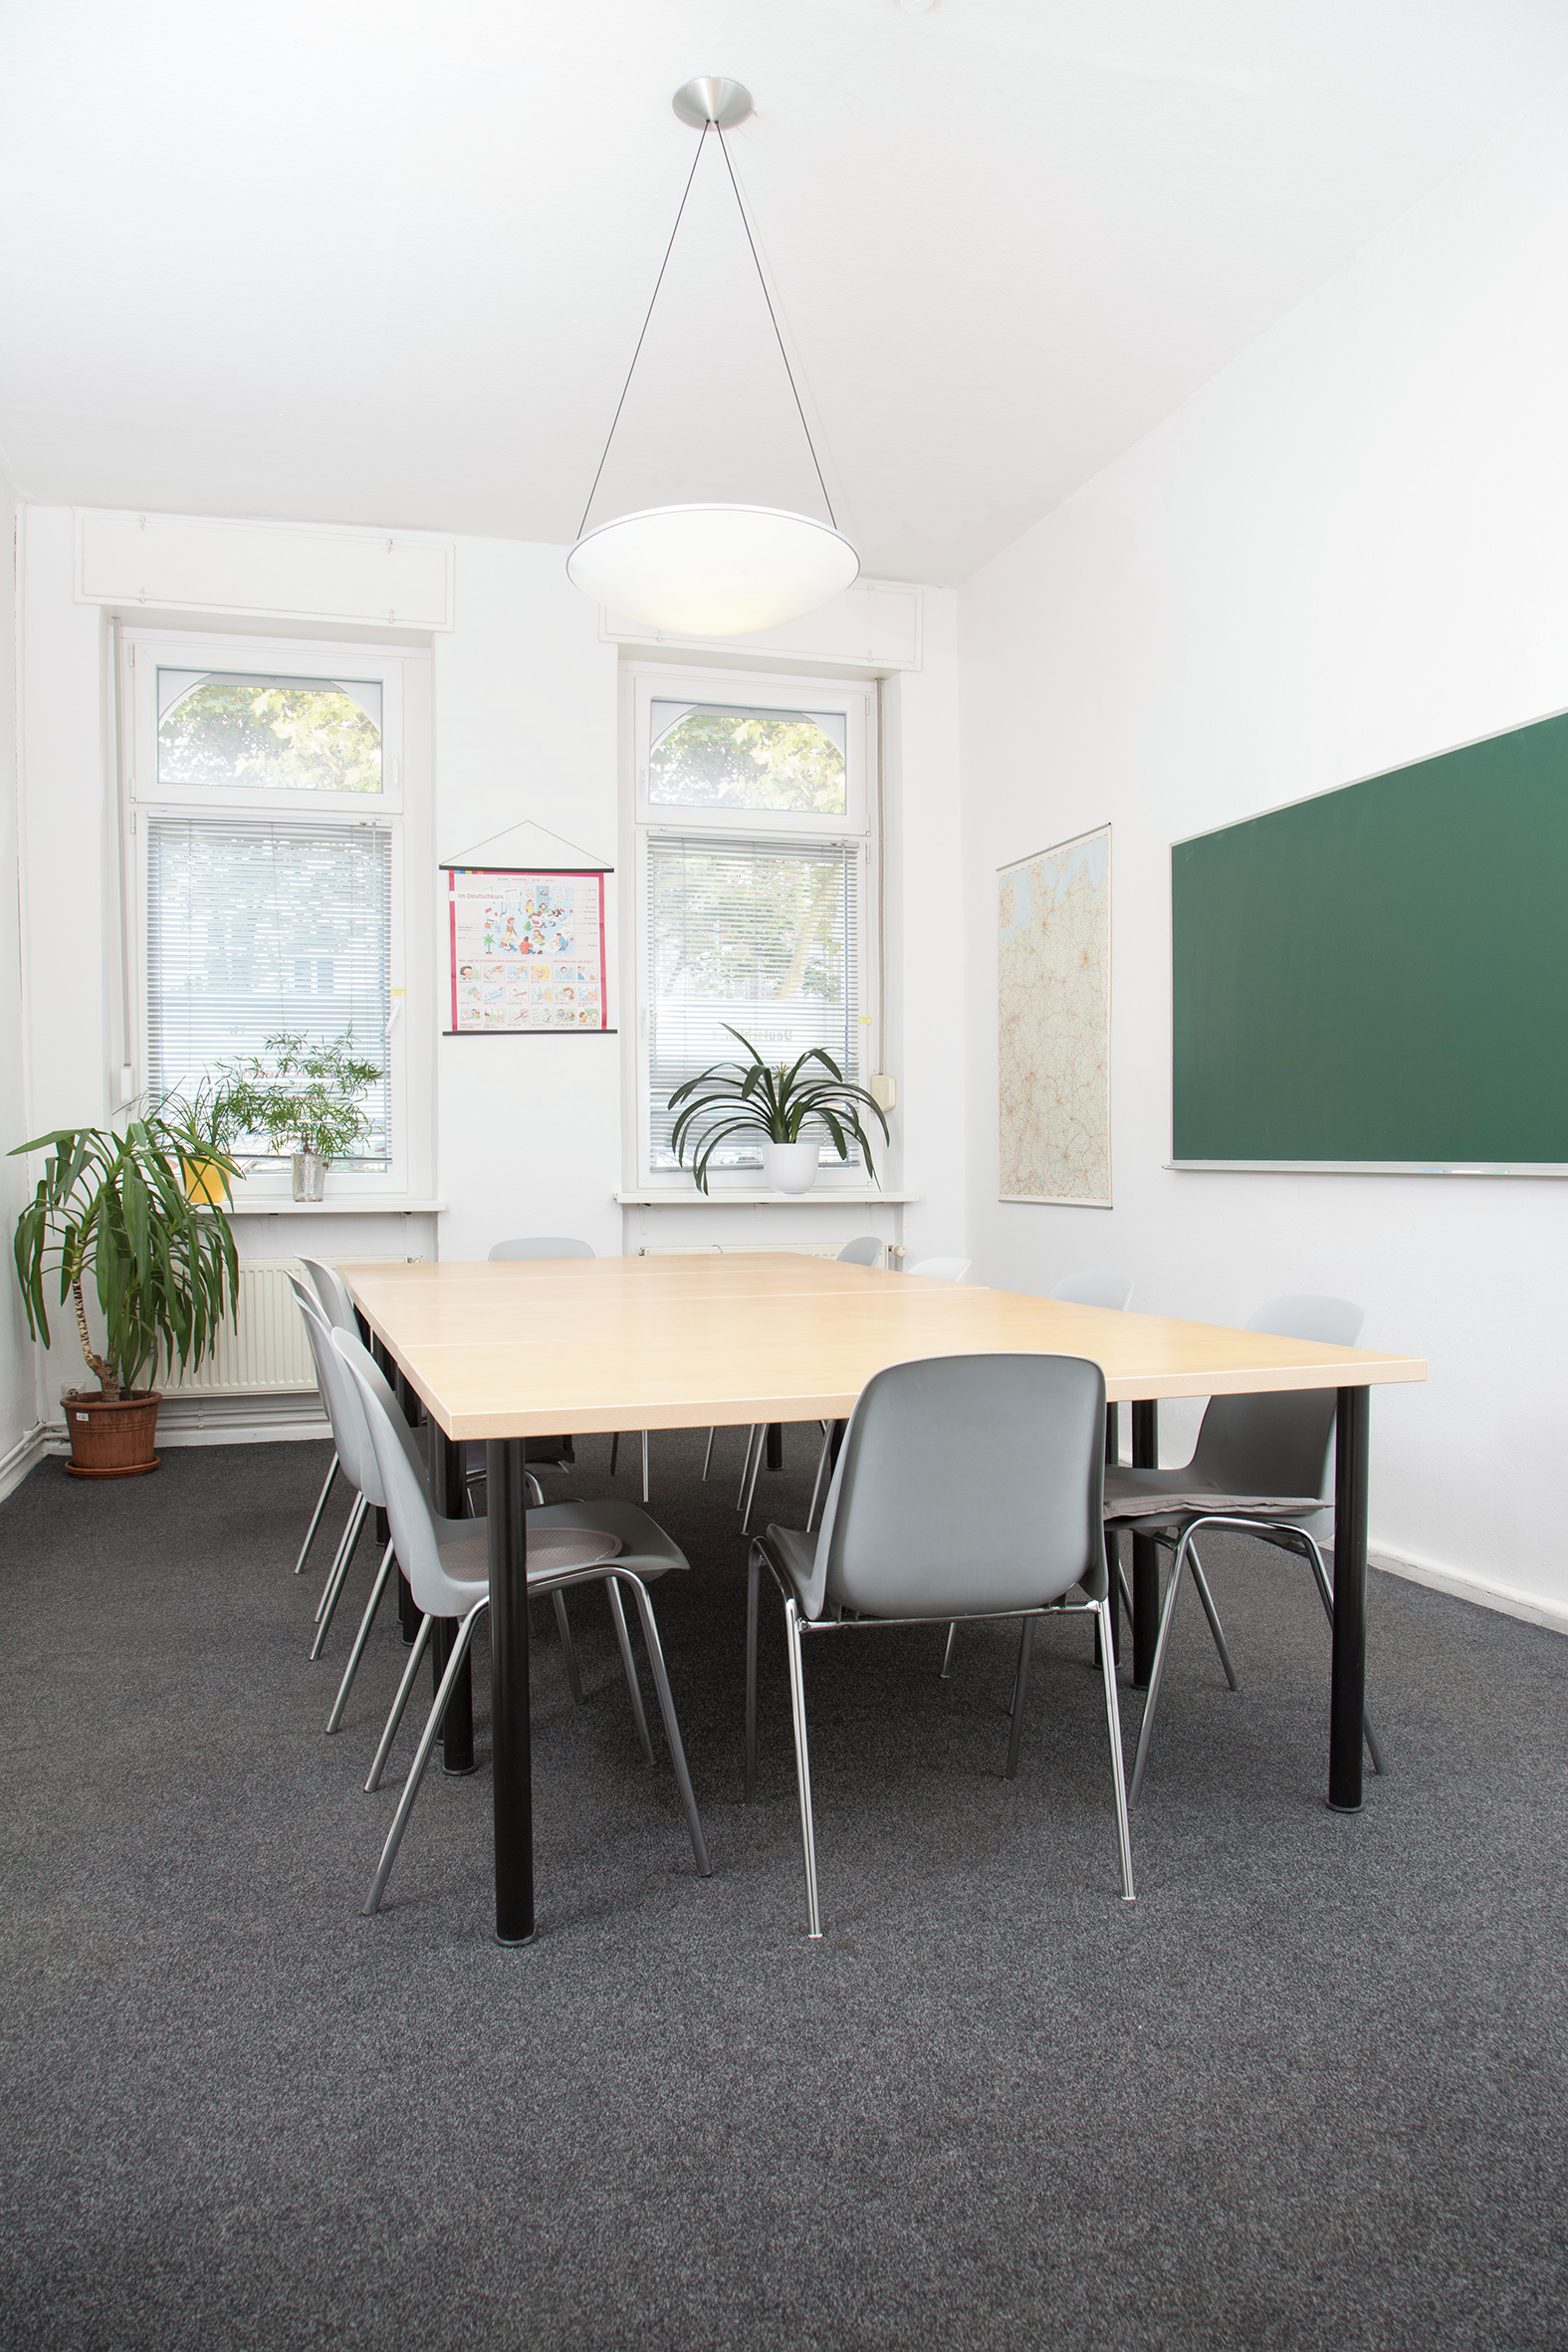 logo sprachenschule raum 1 mieten in berlin. Black Bedroom Furniture Sets. Home Design Ideas